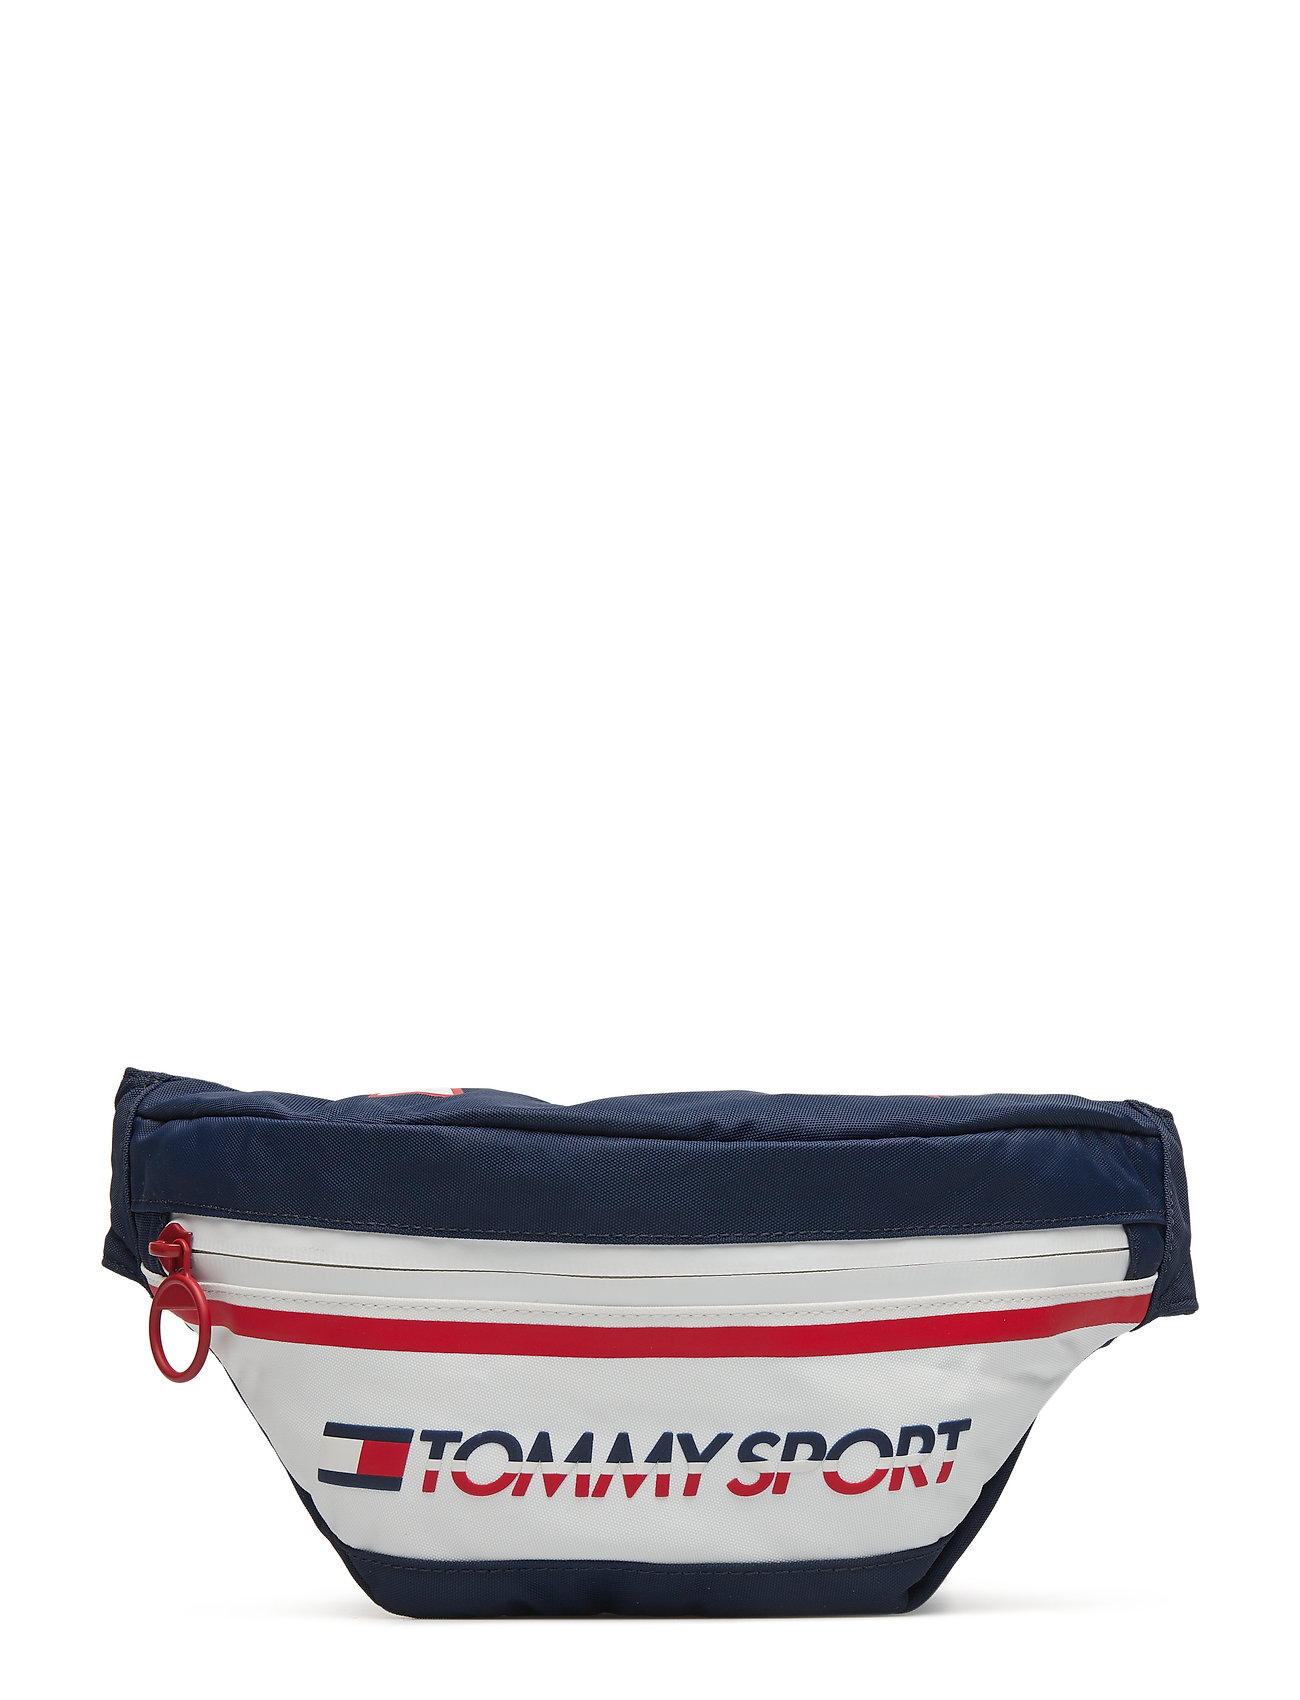 7c0563c95d Ts Icon Bumbag (Corporate) (560 kr) - Tommy Hilfiger - | Boozt.com